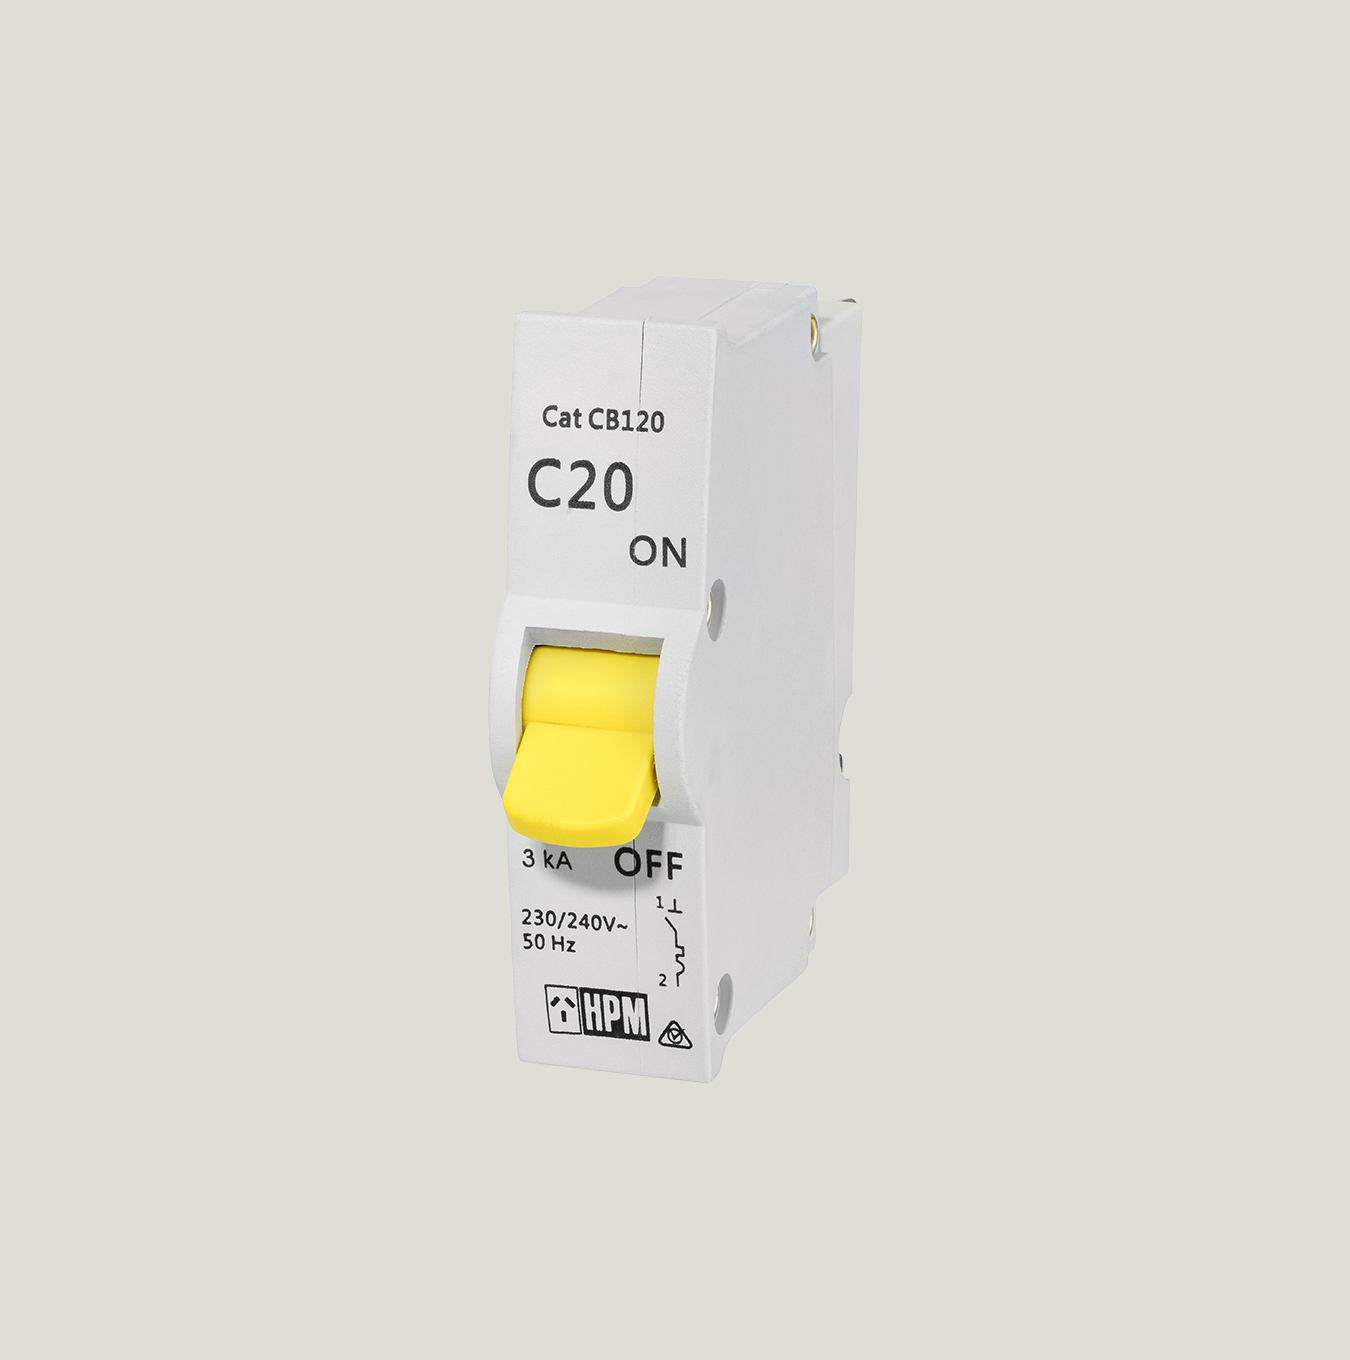 Circuit Breaker Hot Water Modern Design Of Wiring Diagram Electric Motor Breakermotor Product On 20a Plug In For And Power Circuits Nz Site Rh Hpm Co